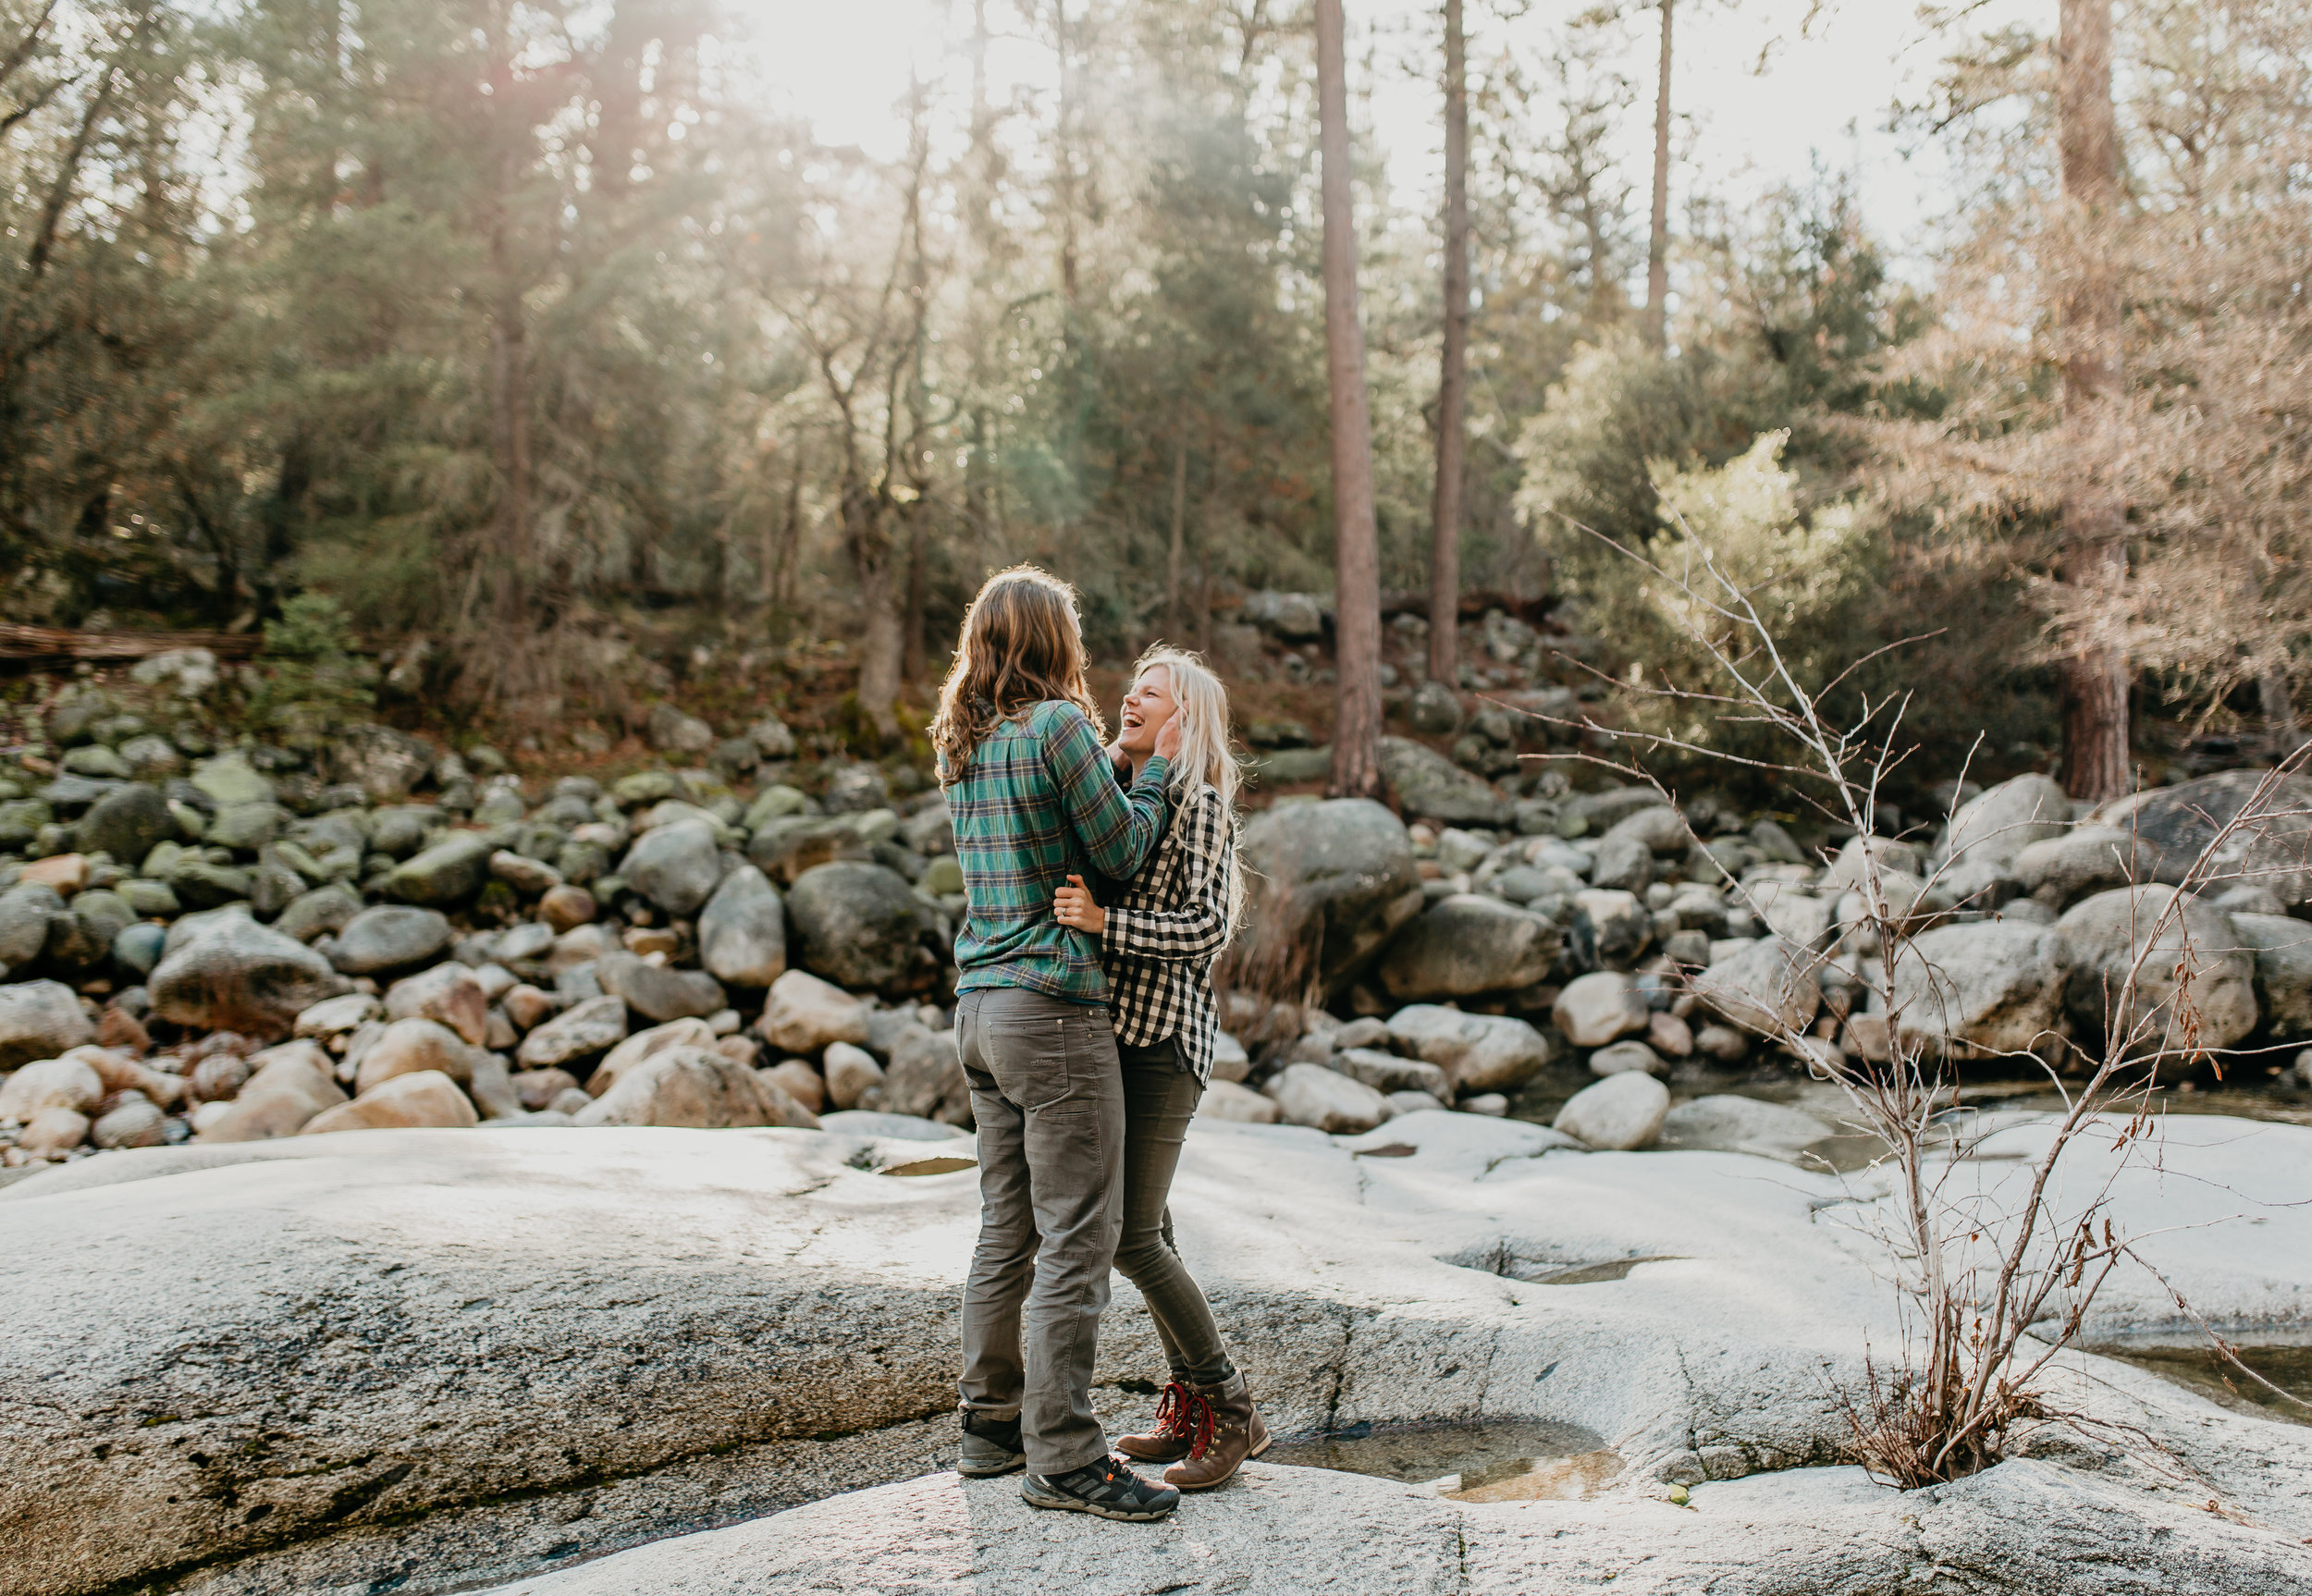 nicole-daacke-photography-yosemite-riverside-adventurous-engagement-photos-in-yosemite-national-park-elopement-photographer-weddings-travel-destination-wedding-eloping-elope-pine-forest-25.jpg